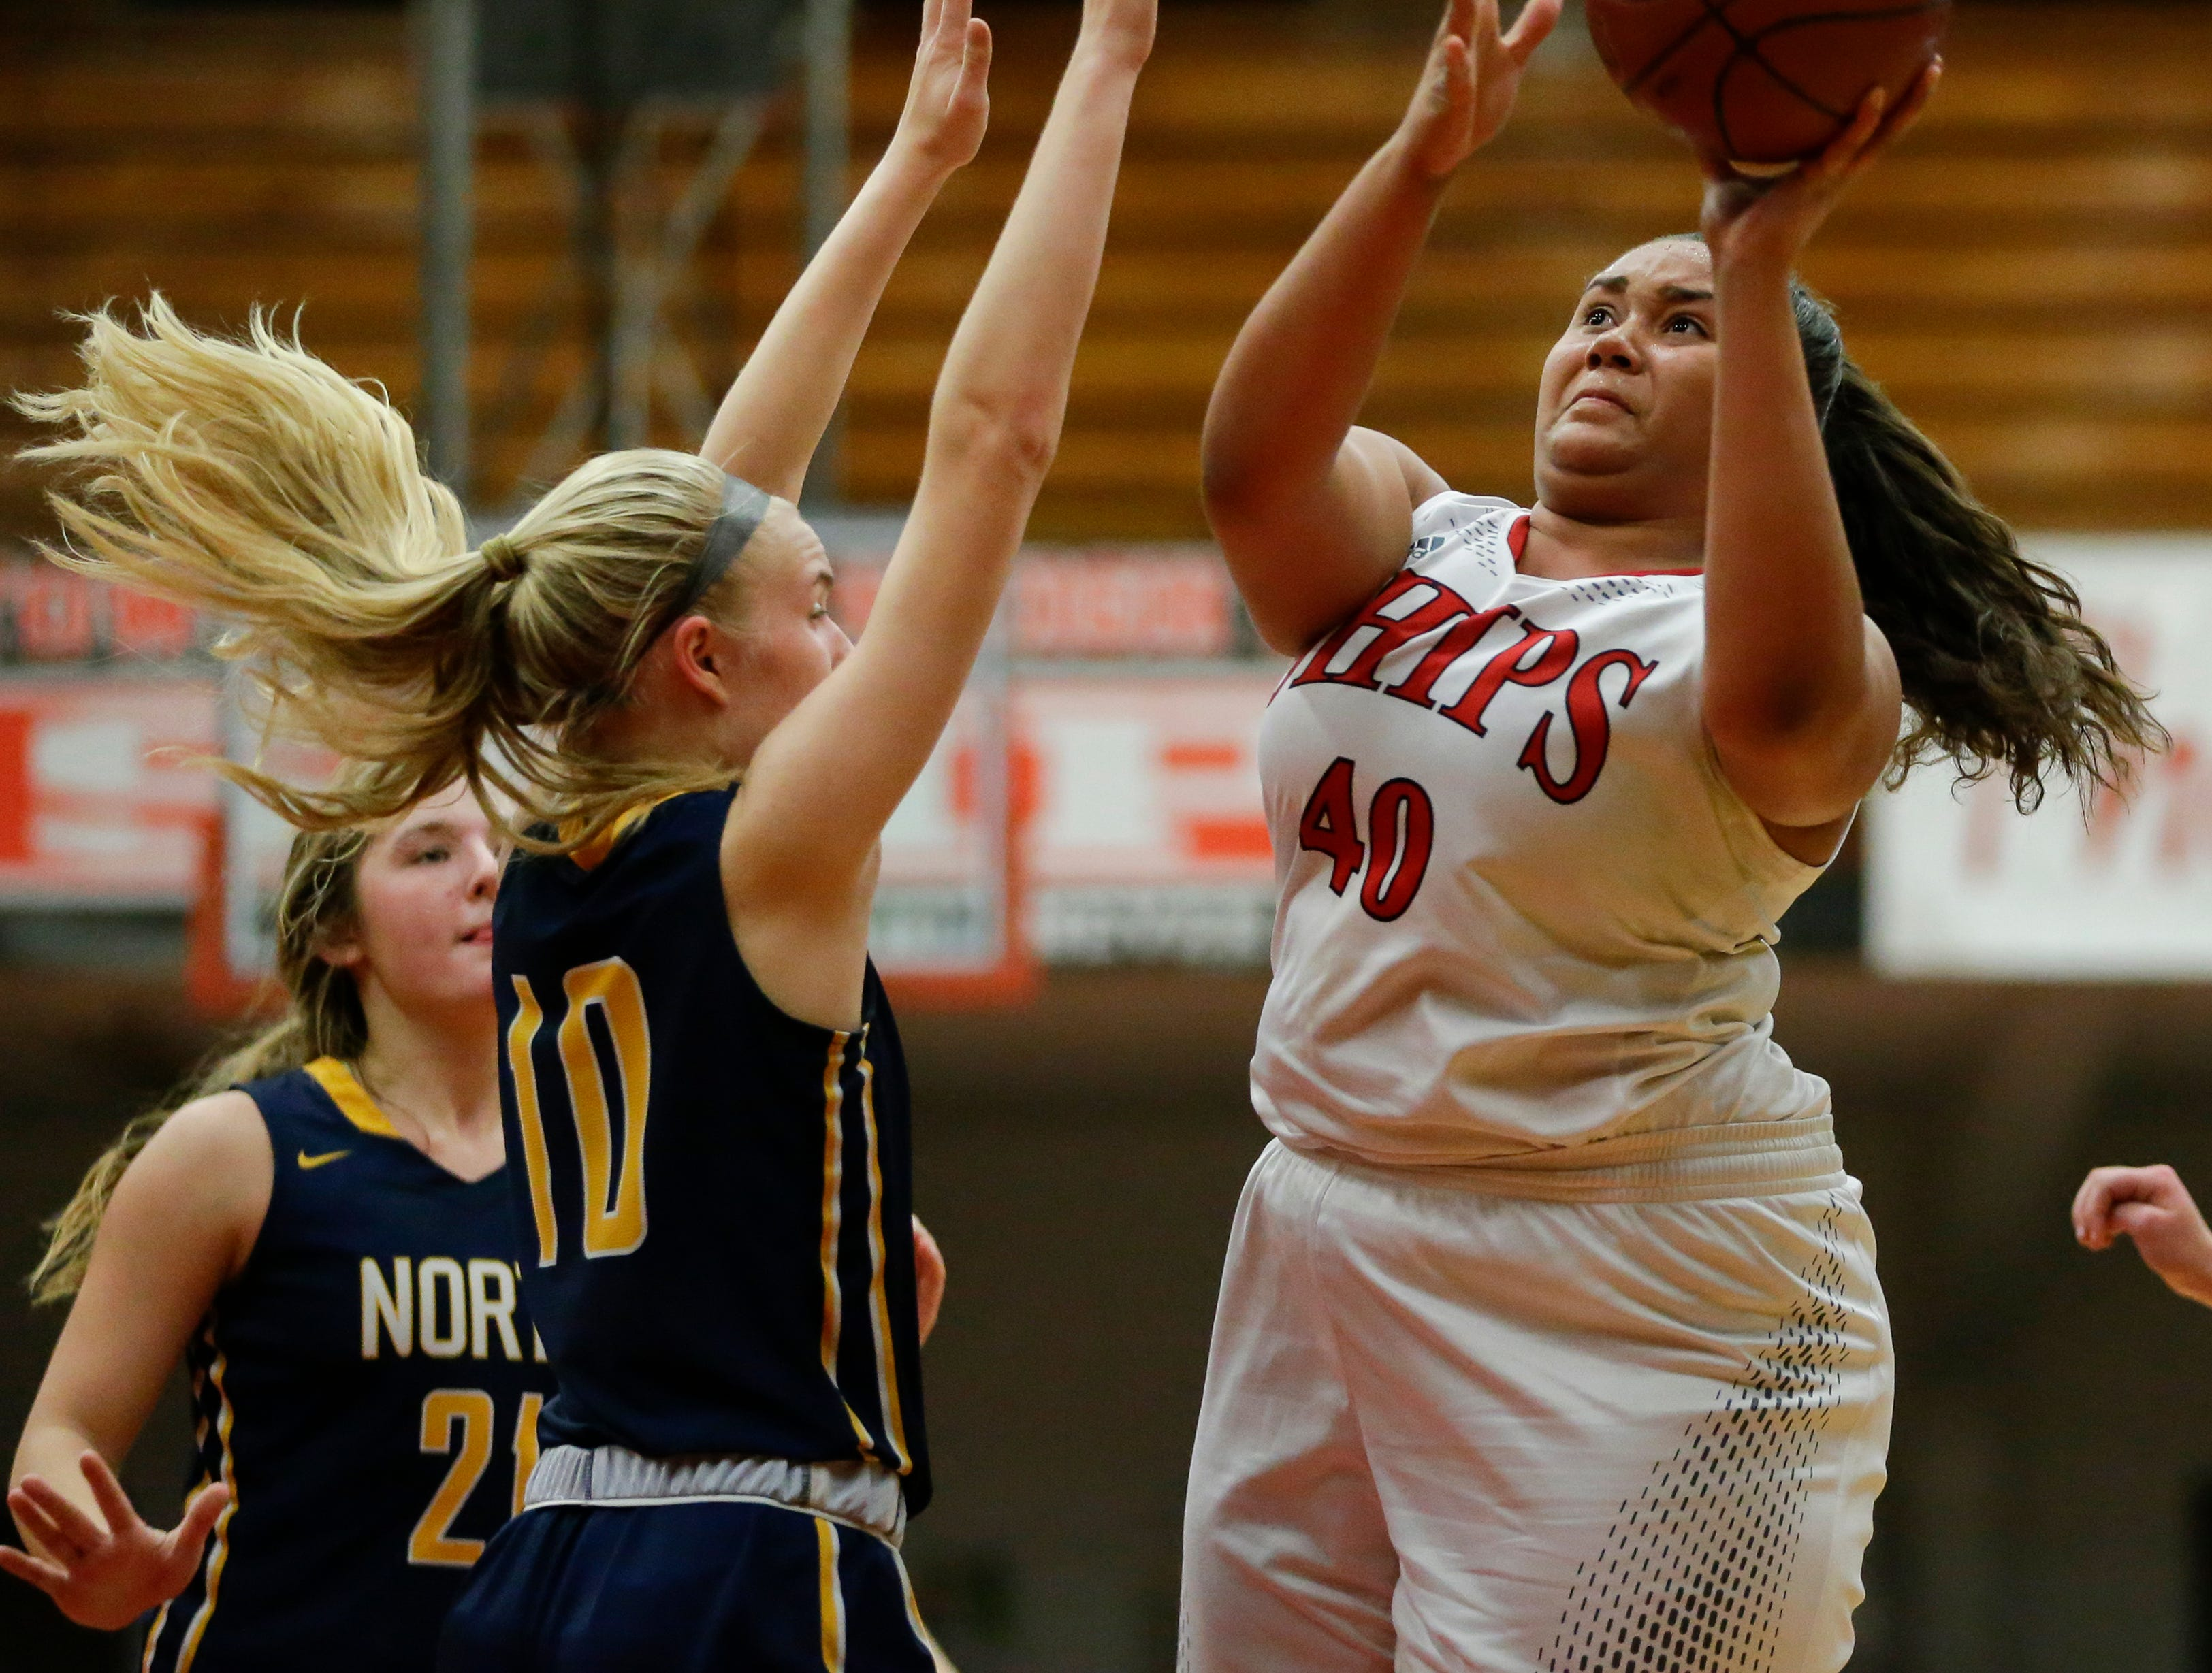 Manitowoc Lincoln's Massendra Musial shoots over Sheboygan North's Sydney Vogel during a Fox River Classic Conference game at Manitowoc Lincoln High School Friday, December 14, 2018, in Manitowoc, Wis. Joshua Clark/USA TODAY NETWORK-Wisconsin